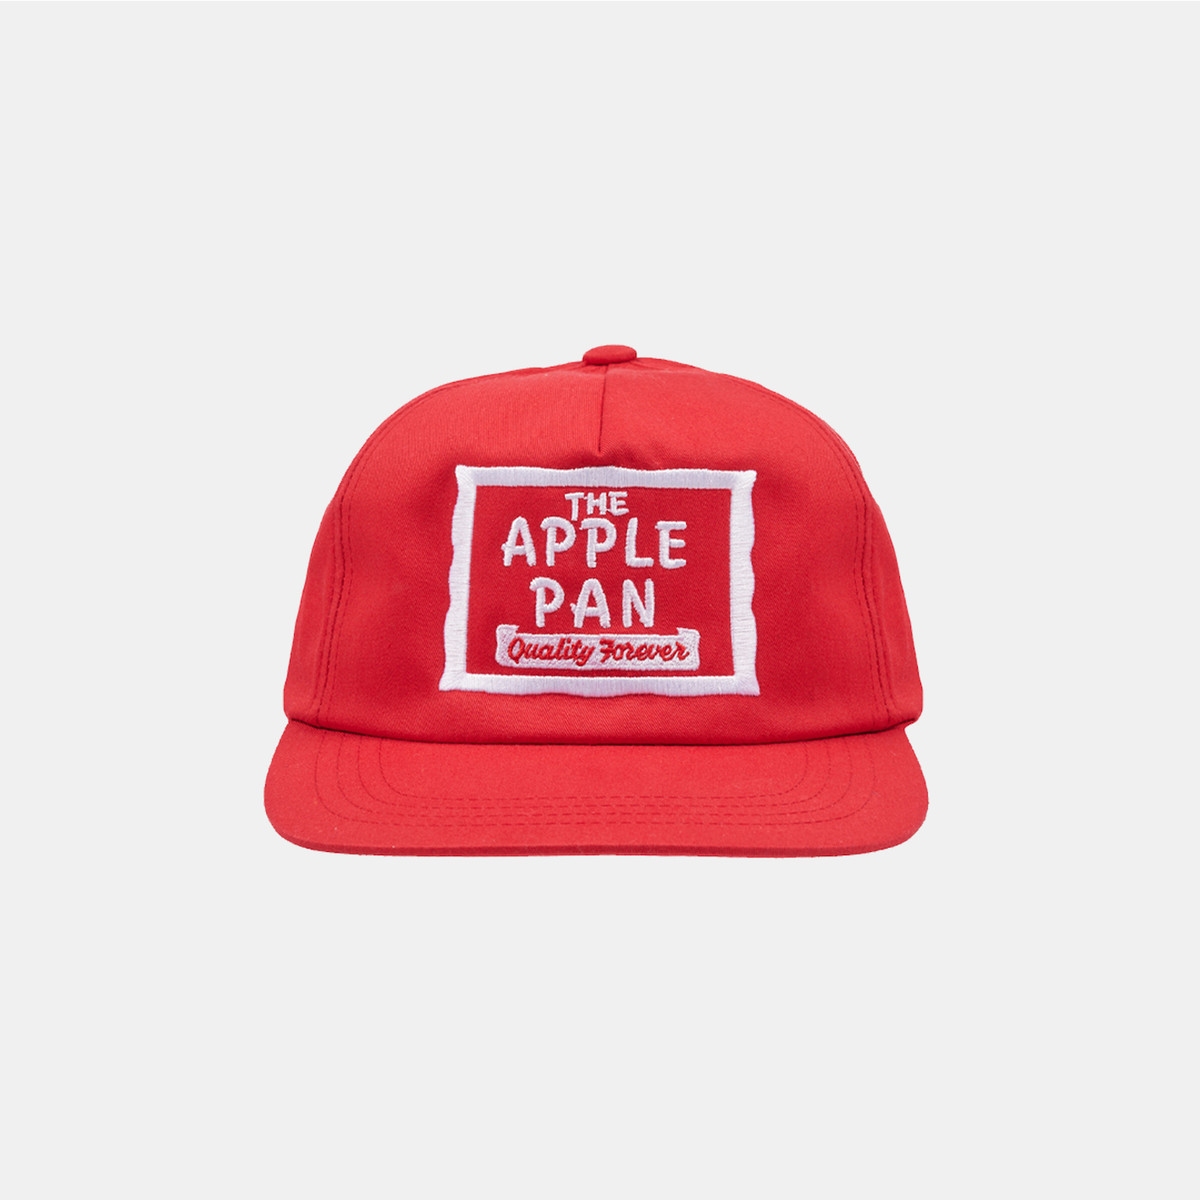 A red collaboration hat with old school burger option the Apple Pan.